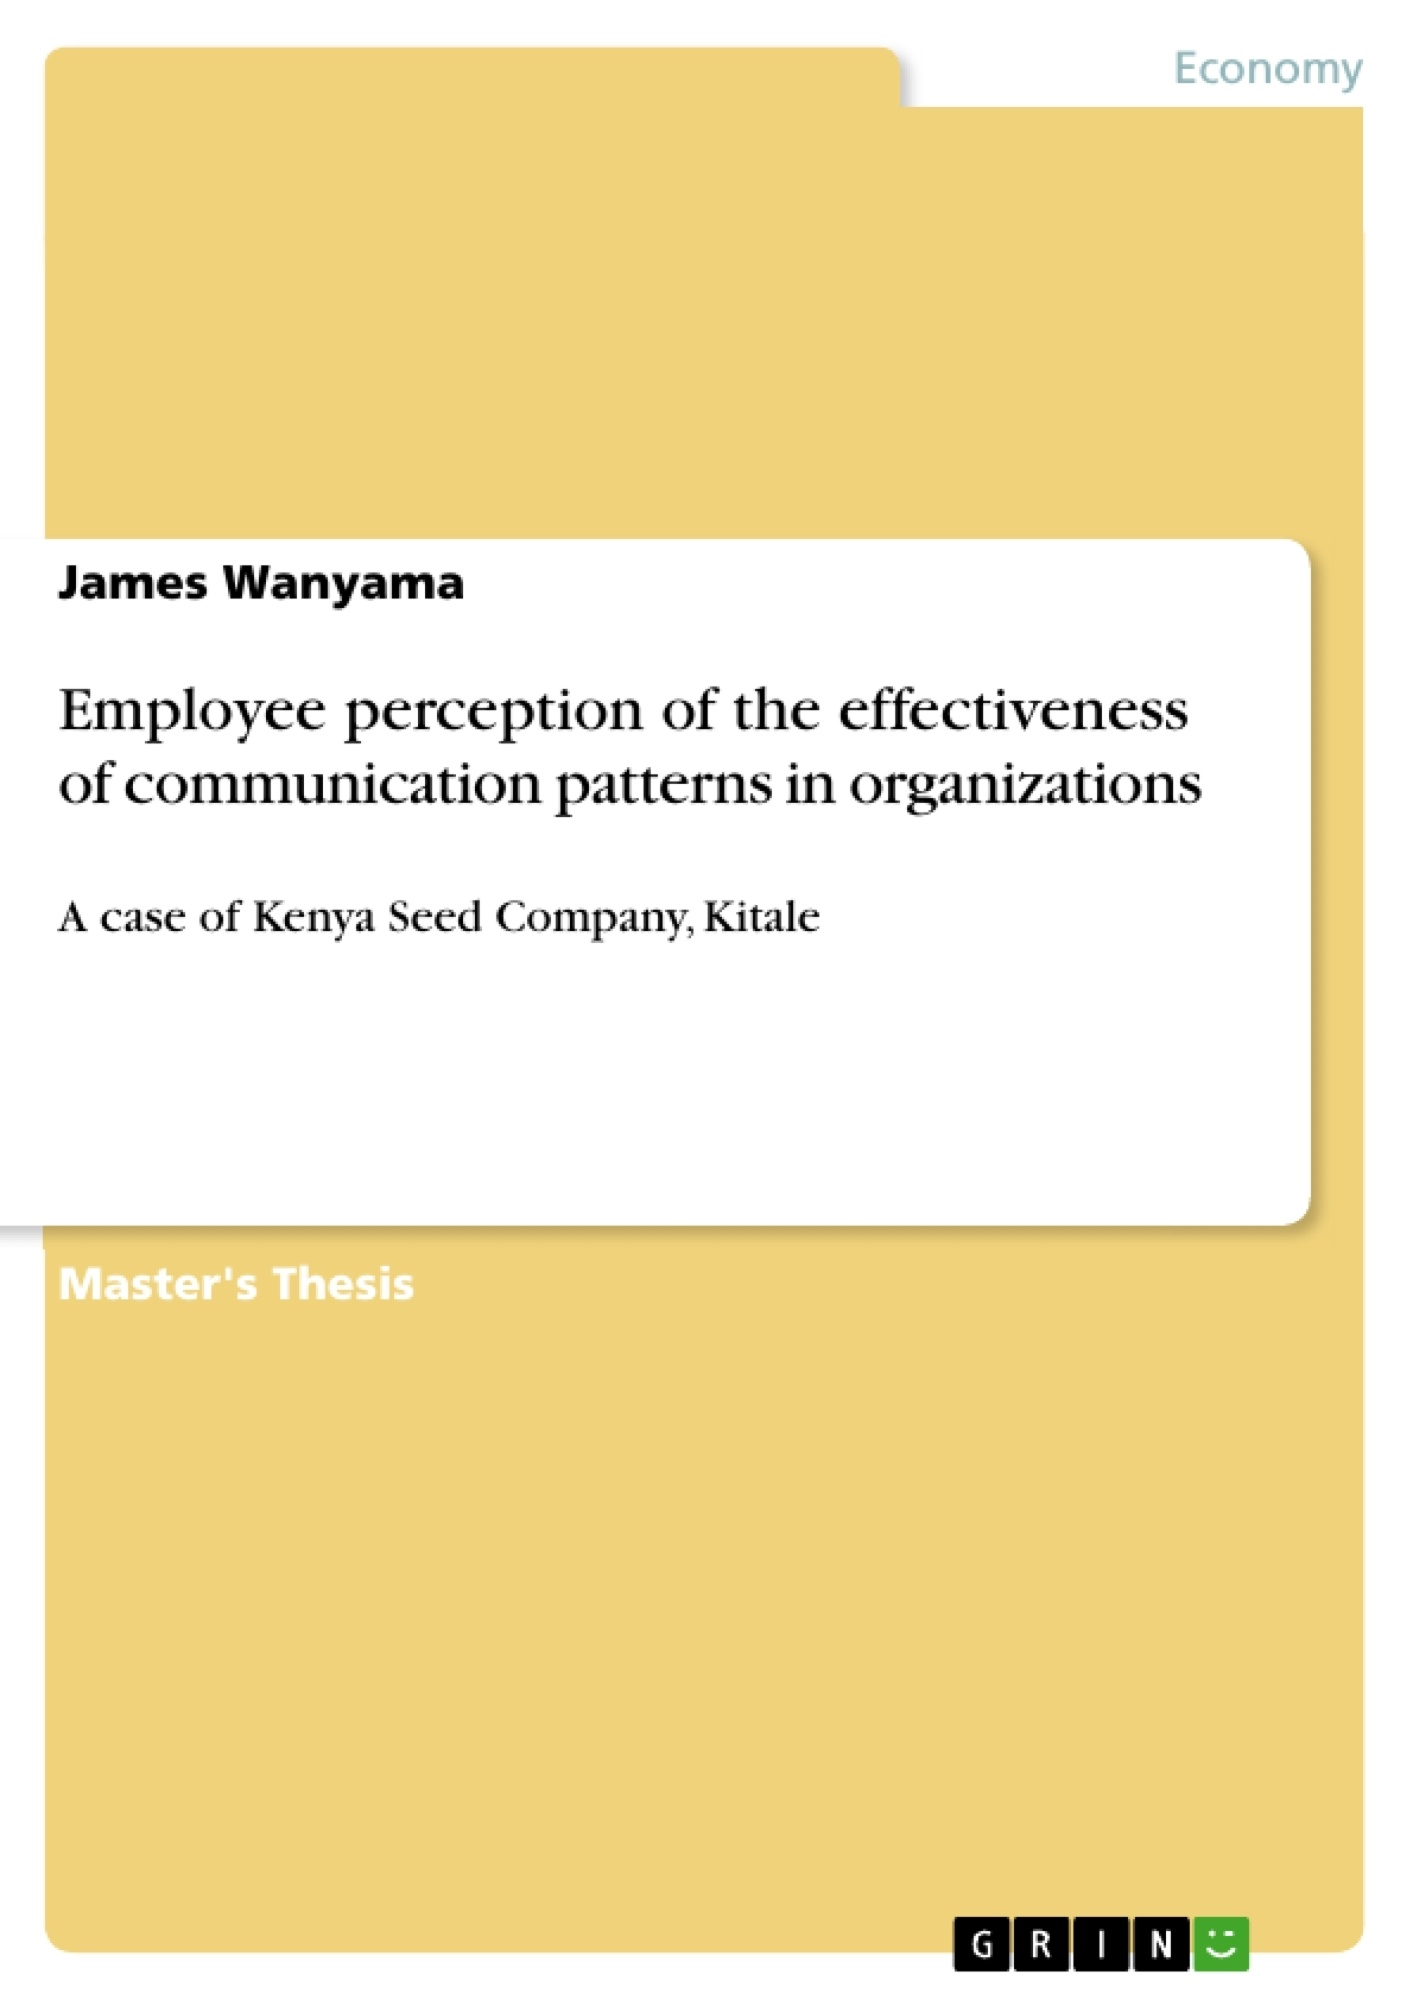 Title: Employee perception of the effectiveness of communication patterns in organizations